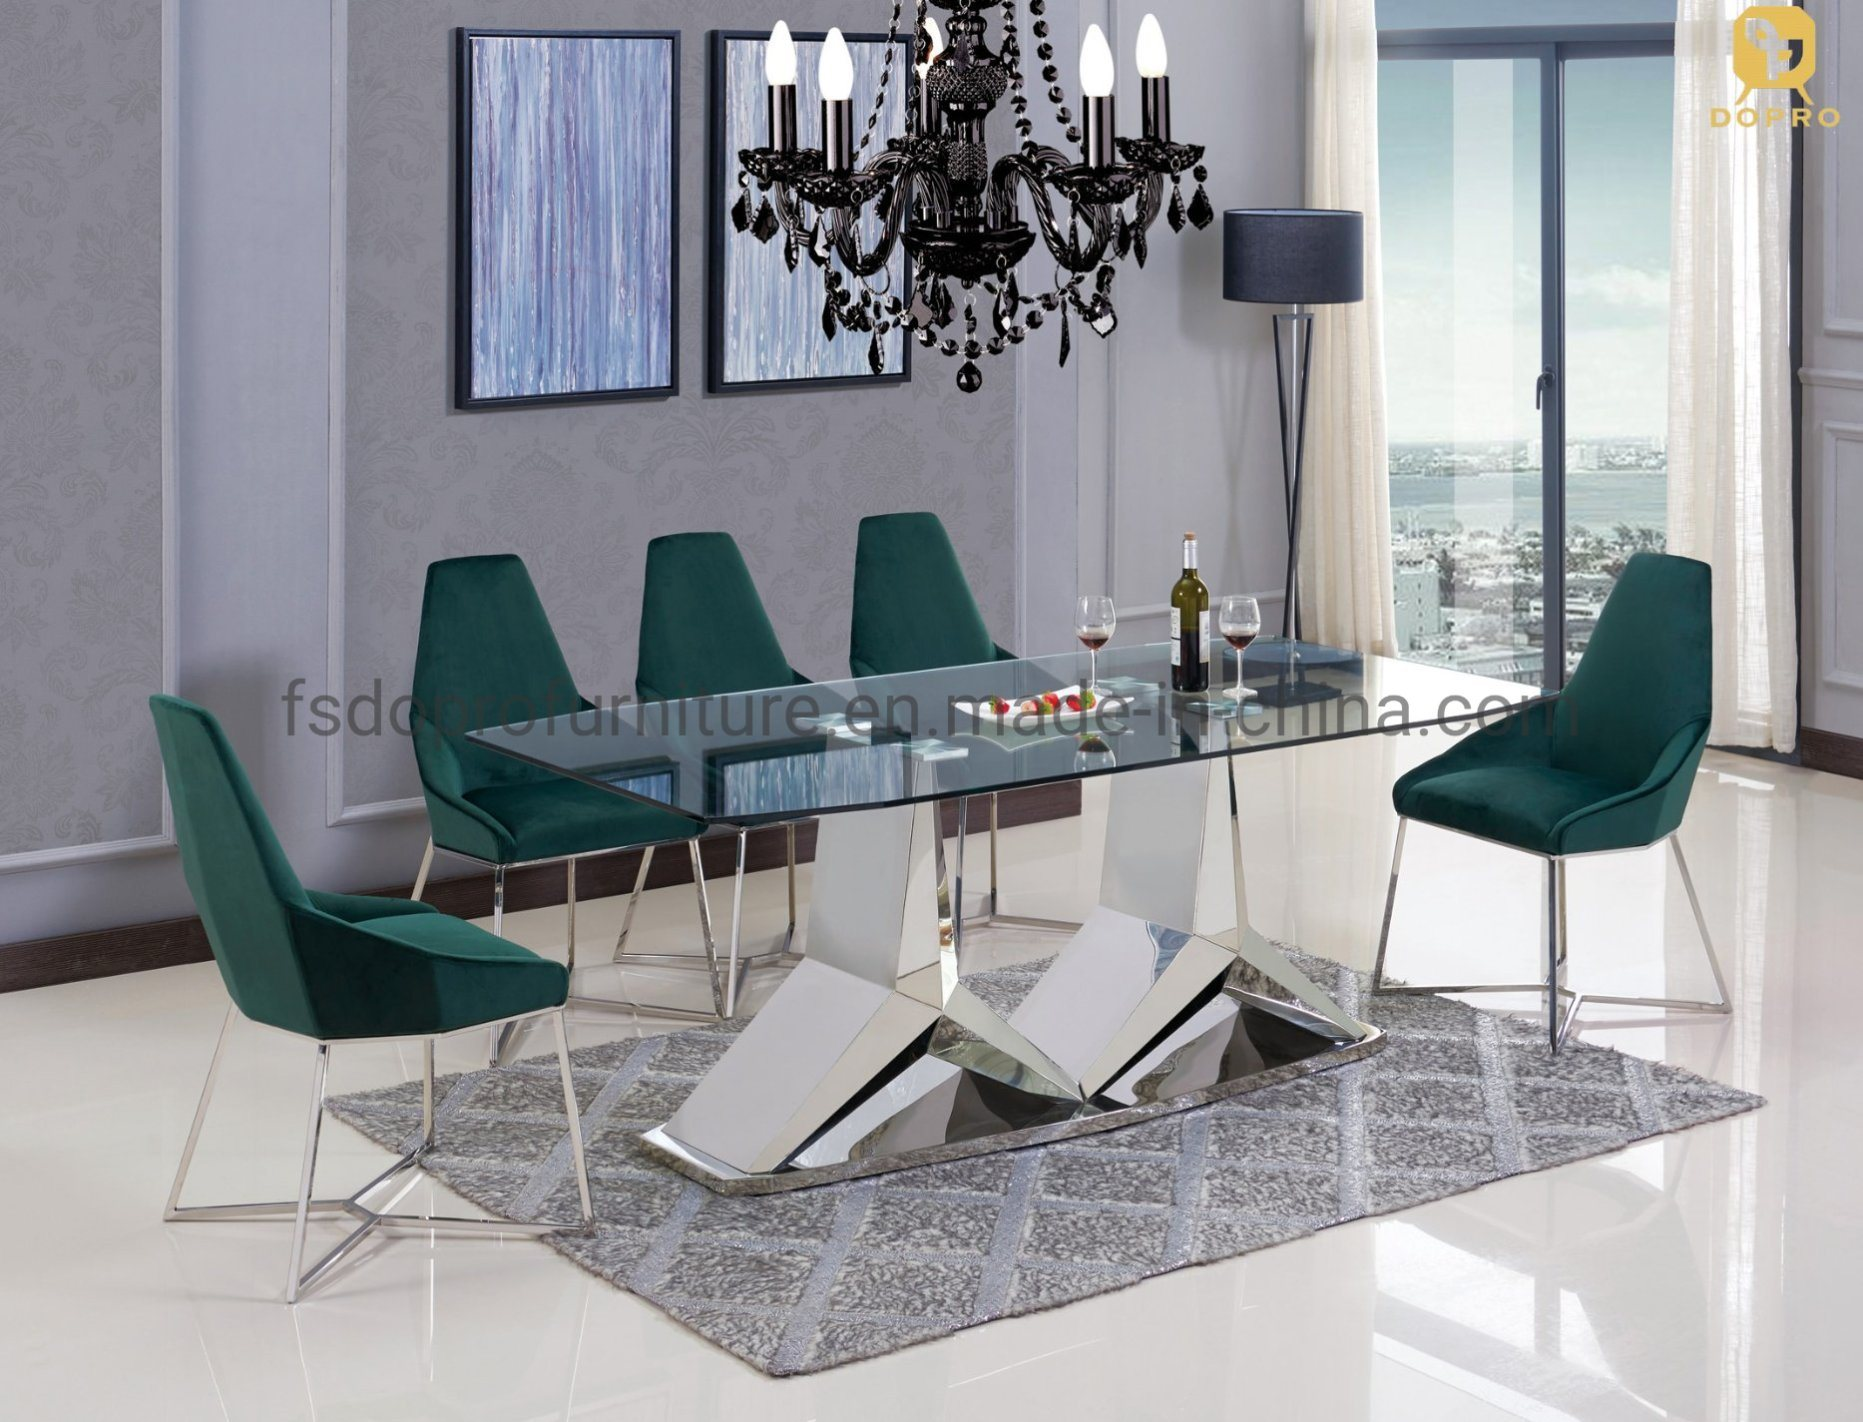 China Stainless Steel Leg Dining Table With Chairs Dining Room Sets Modern Luxury Metal Table D1805 China Dining Table Stainless Steel Table